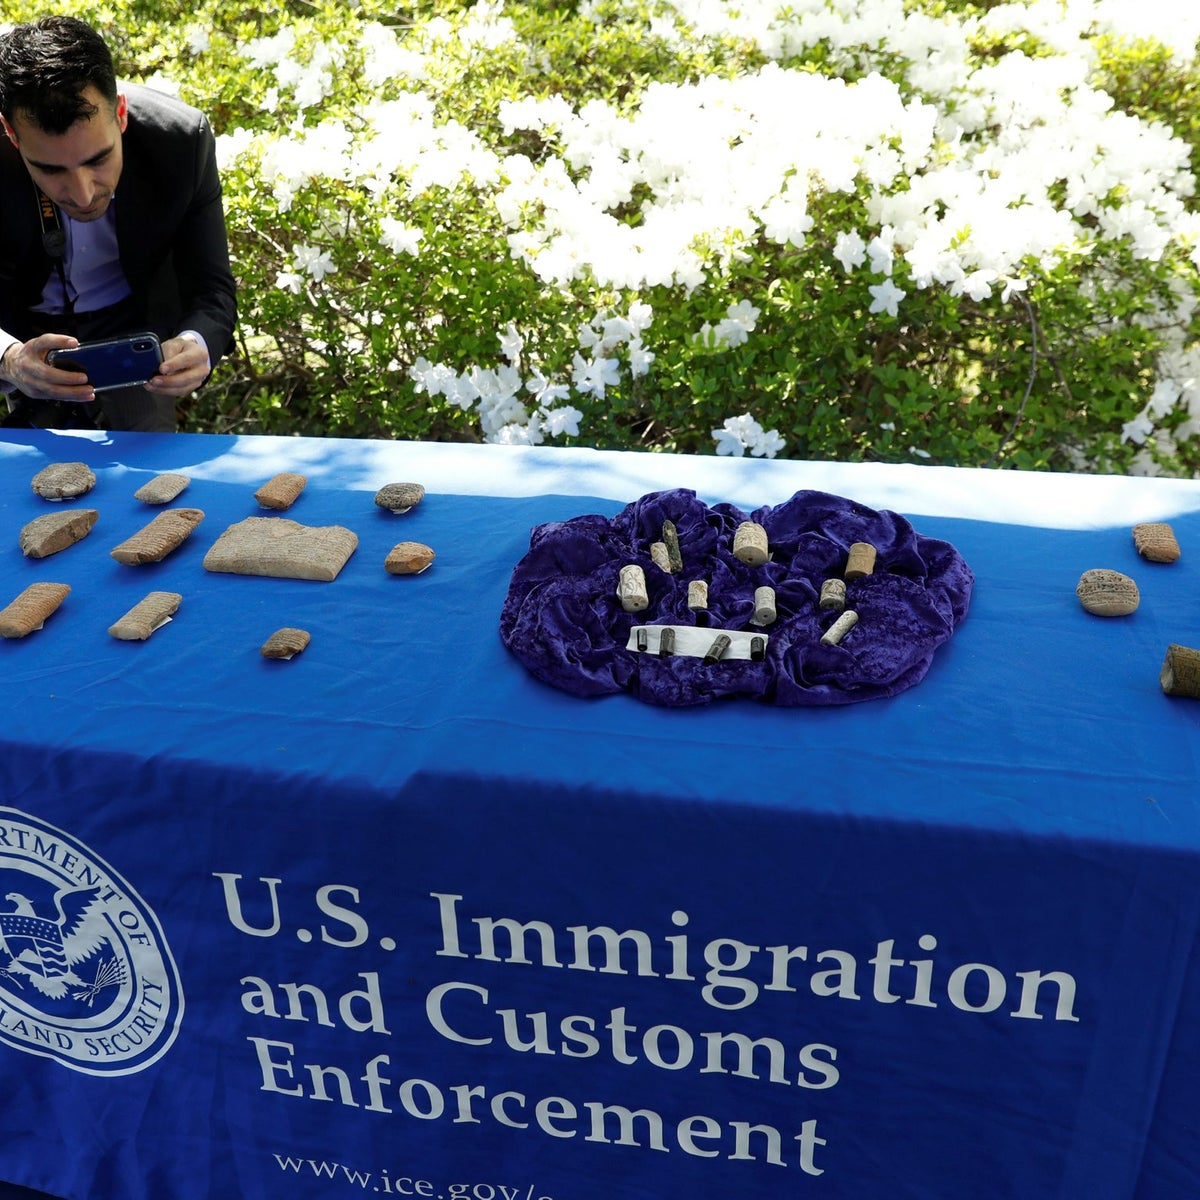 A man photographs artifacts on display, as U.S. Immigration and Customs Enforcement (ICE) hosts an event to return several thousand ancient artifacts to the Republic of Iraq, at the Iraqi ambassador's residence in Washington, DC, U.S., May 2, 2018.